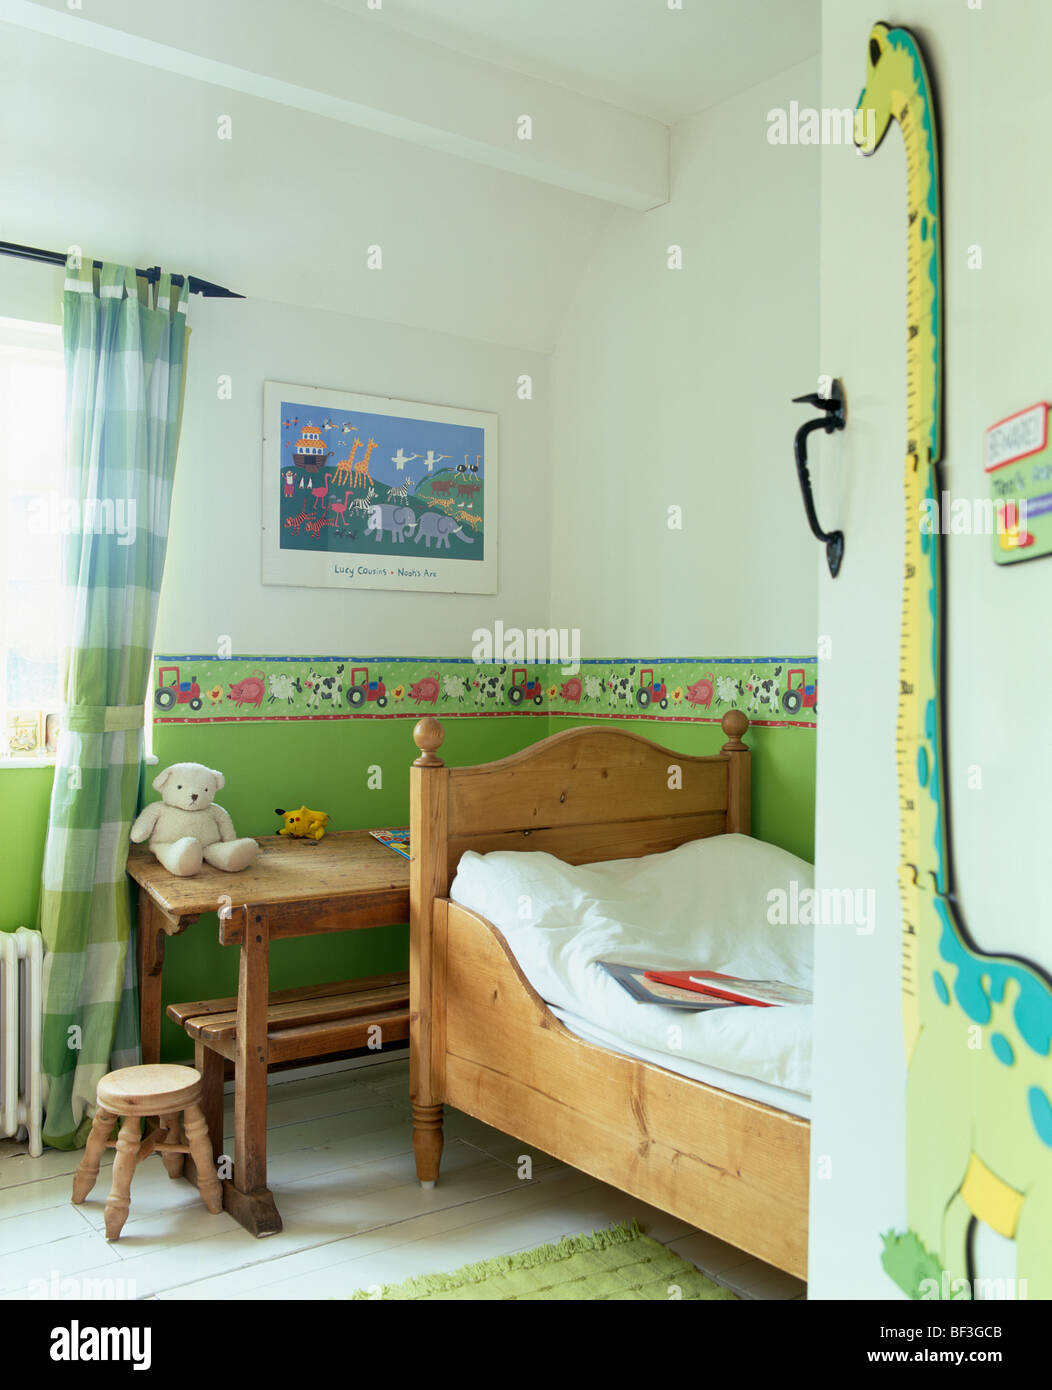 green bedroom pine furniture. Green Wallpaper Border And Dado On Wall Above Pine Bed In Child\u0027s Bedroom With Small Wooden Desk Furniture L